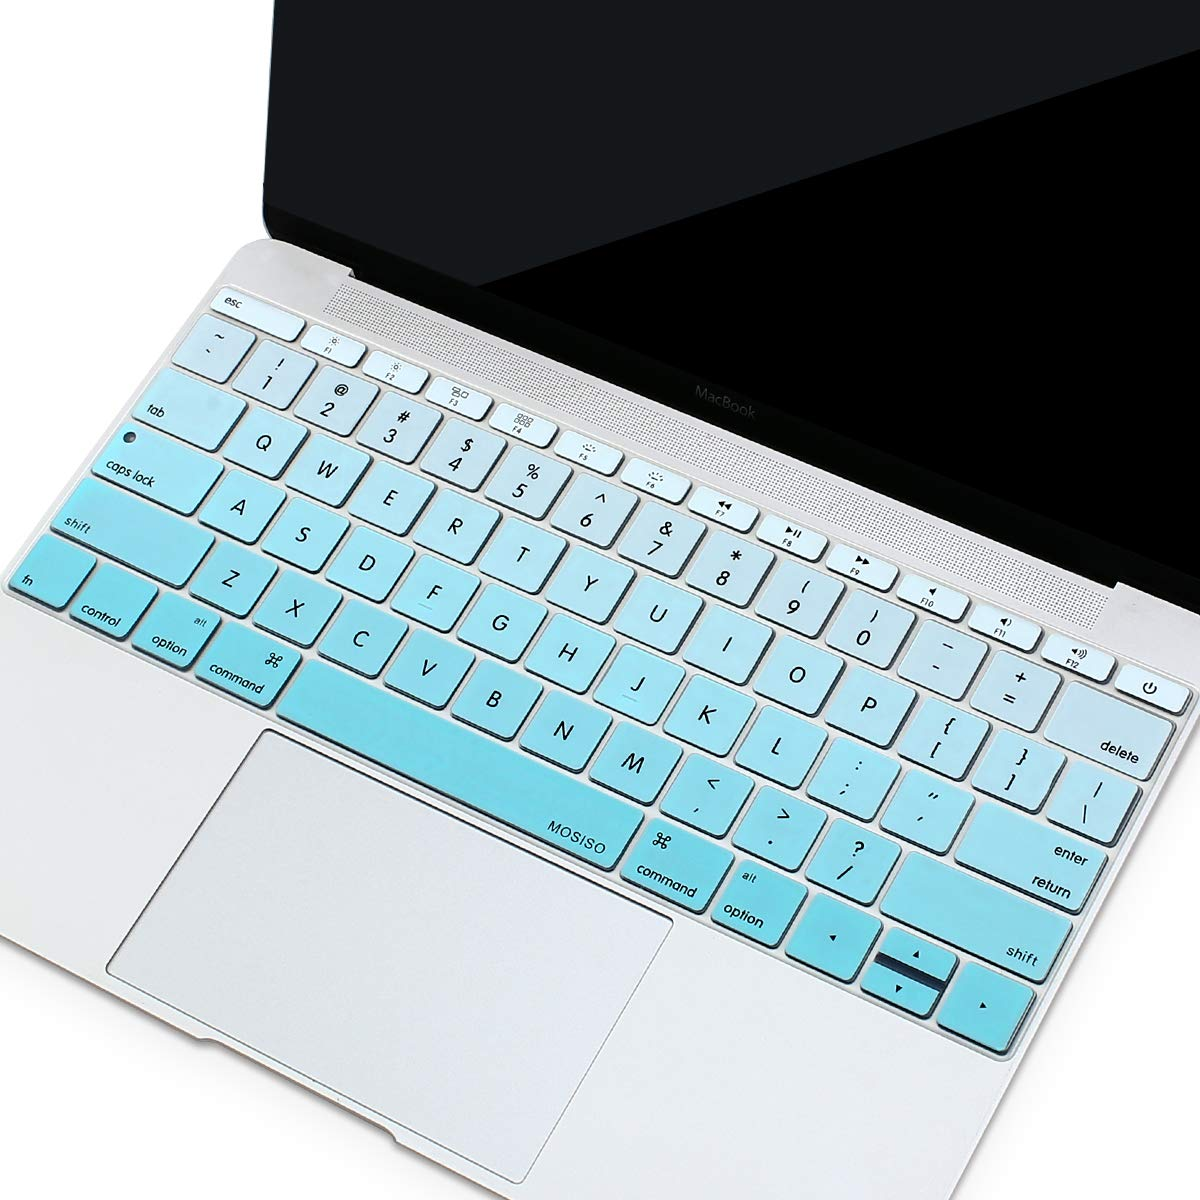 Serenity Blue MOSISO Silicone Keyboard Cover Protective Skin Compatible with MacBook Pro 13 inch 2017 /& 2016 Release A1708 Without Touch Bar MacBook 12 inch A1534